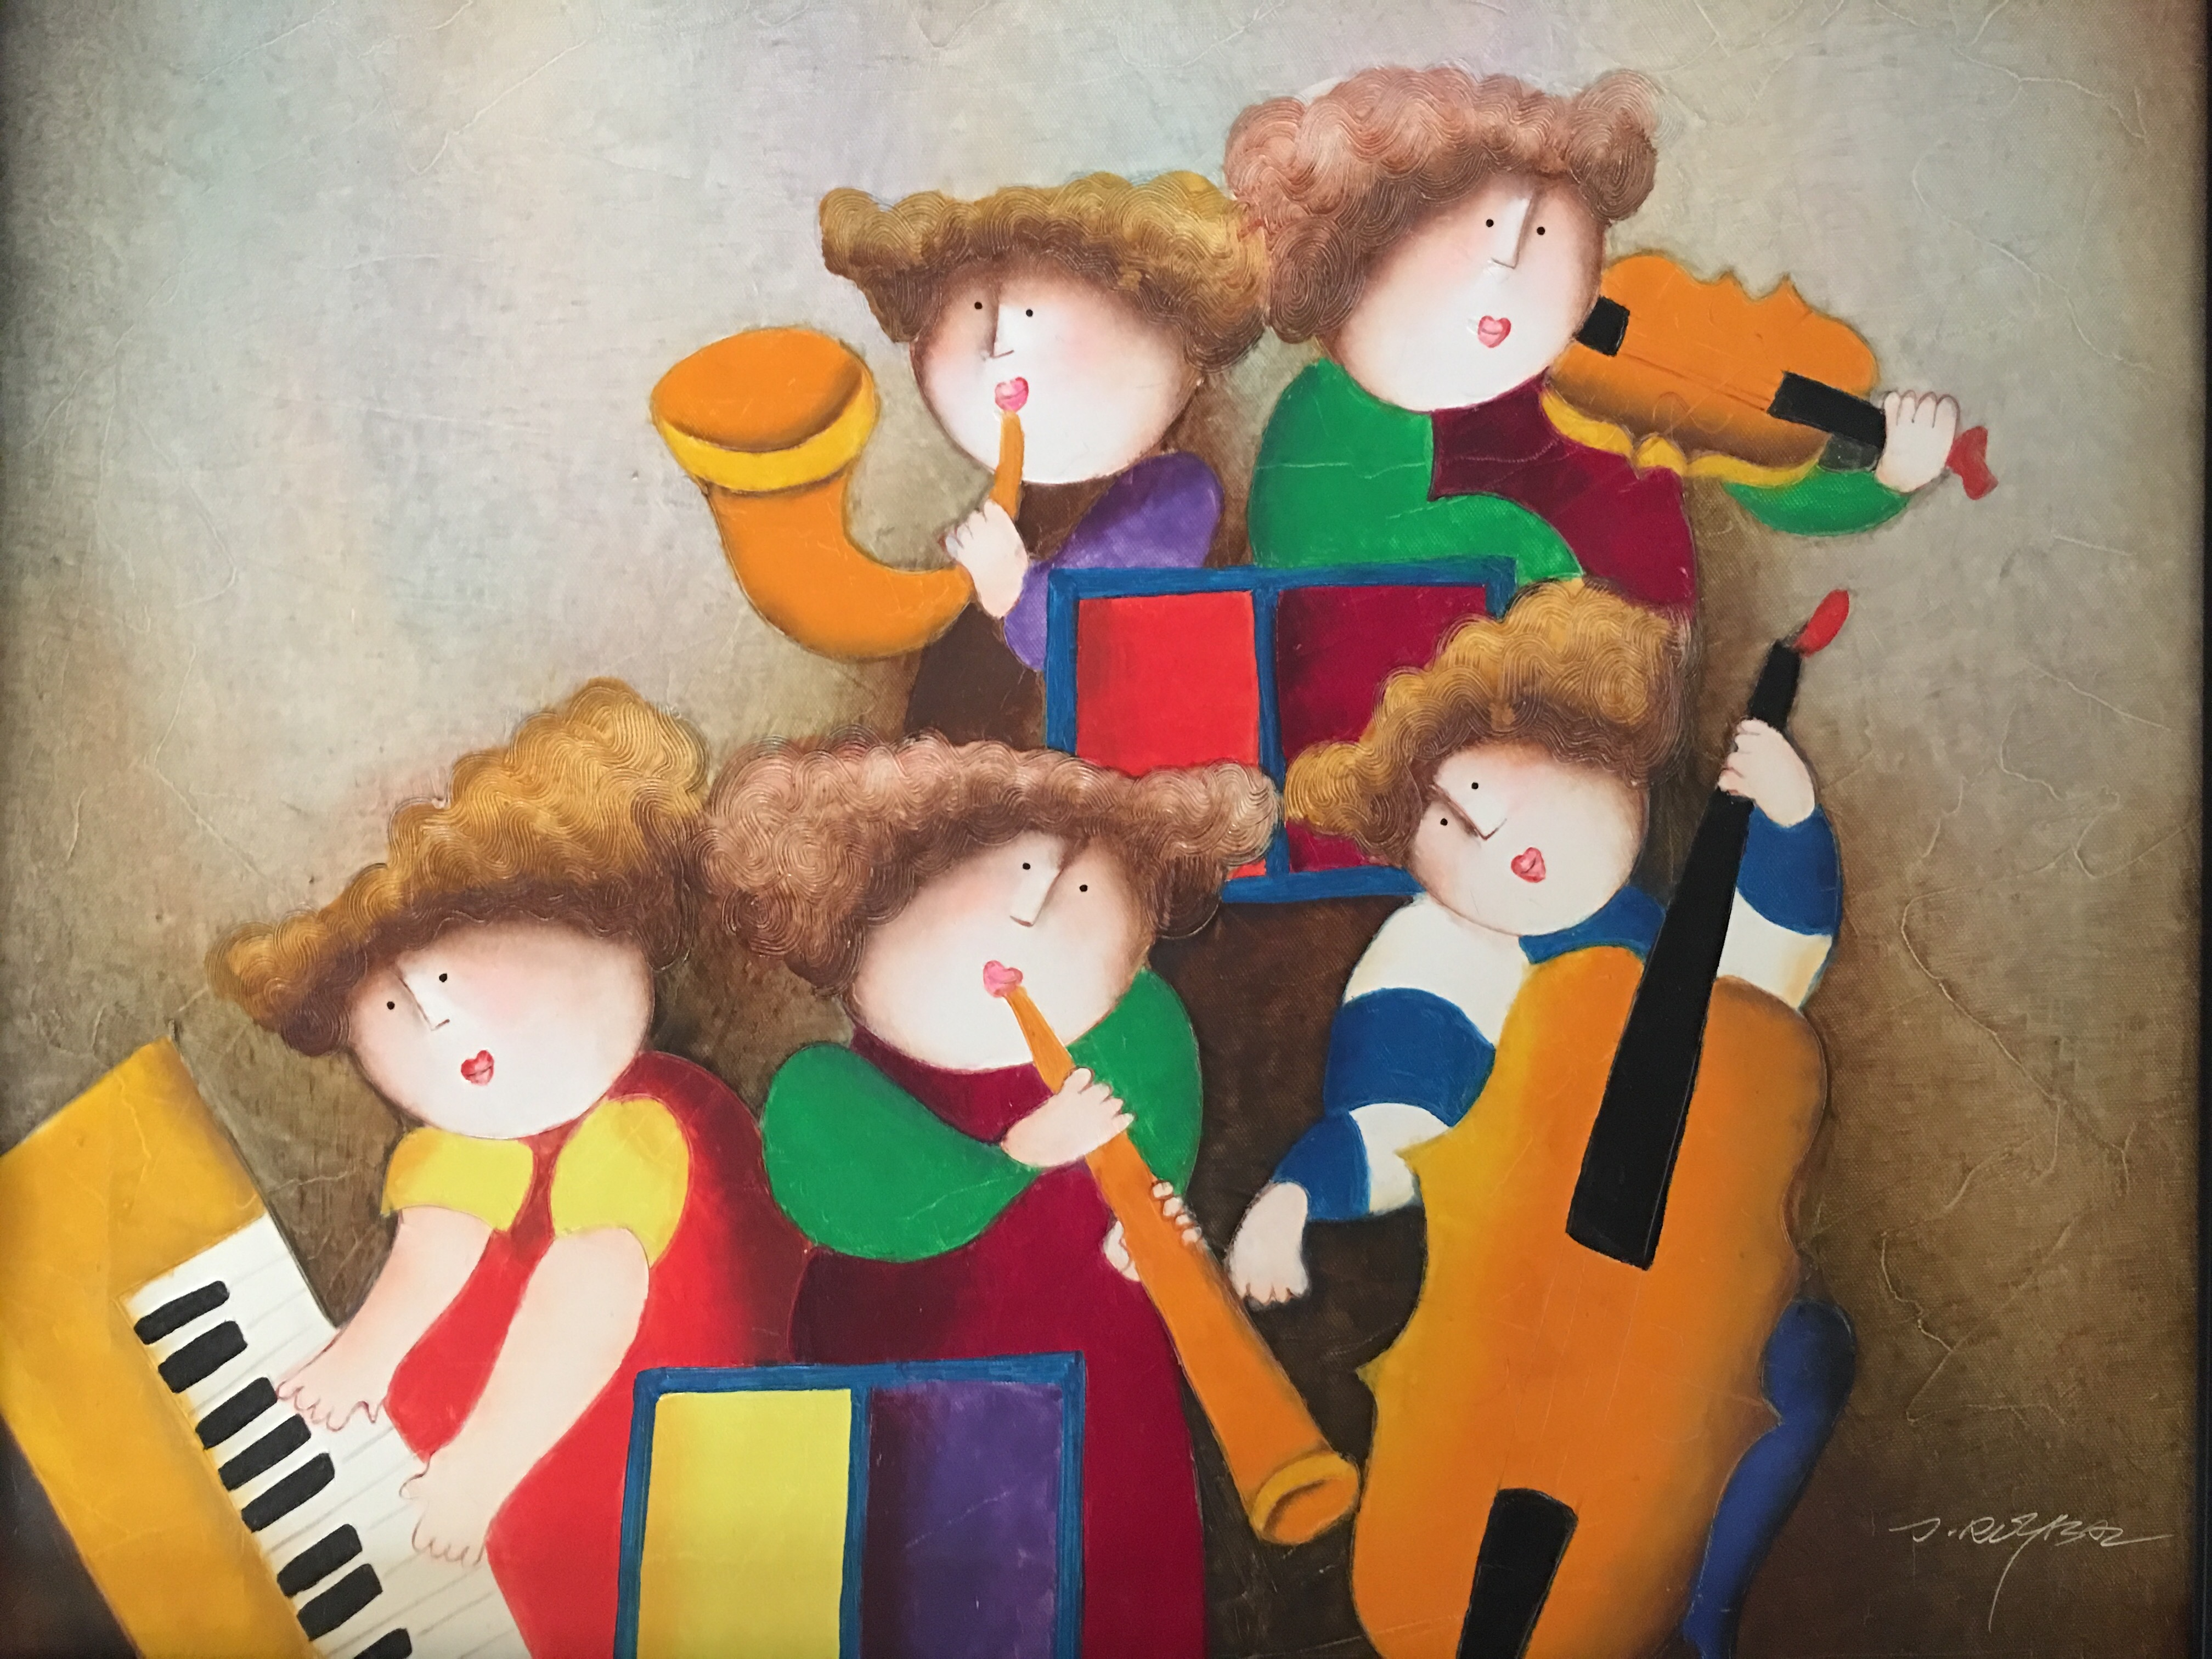 Child Musicians artwork by Joyce Roybal - art listed for sale on Artplode